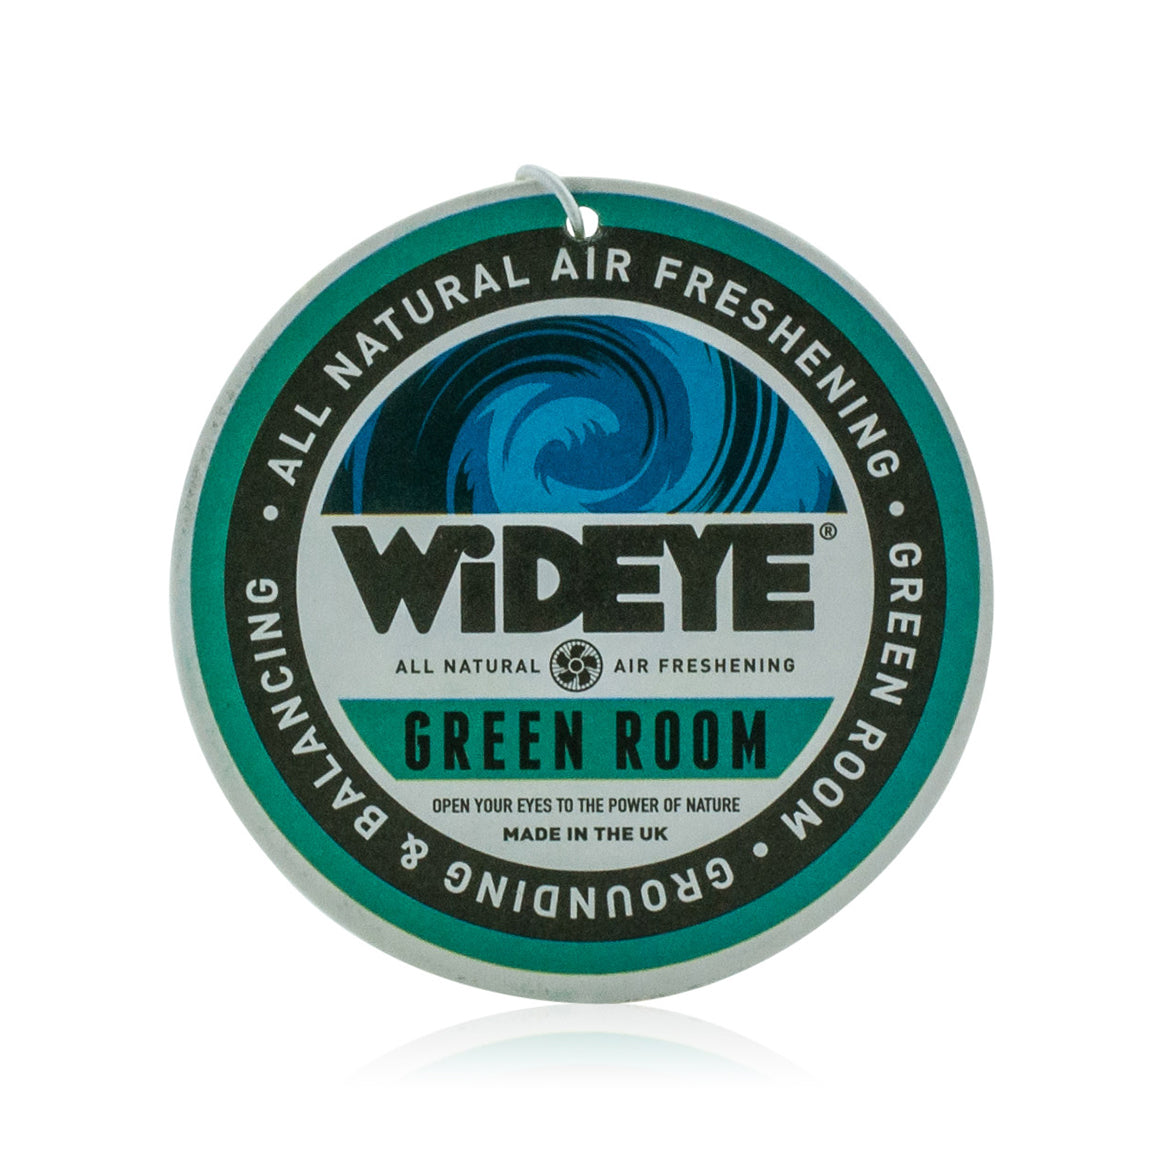 Natural aromatherapy 'Green Room' re-chargeable air freshener for your car or home handmade by WiDEYE in Rye.